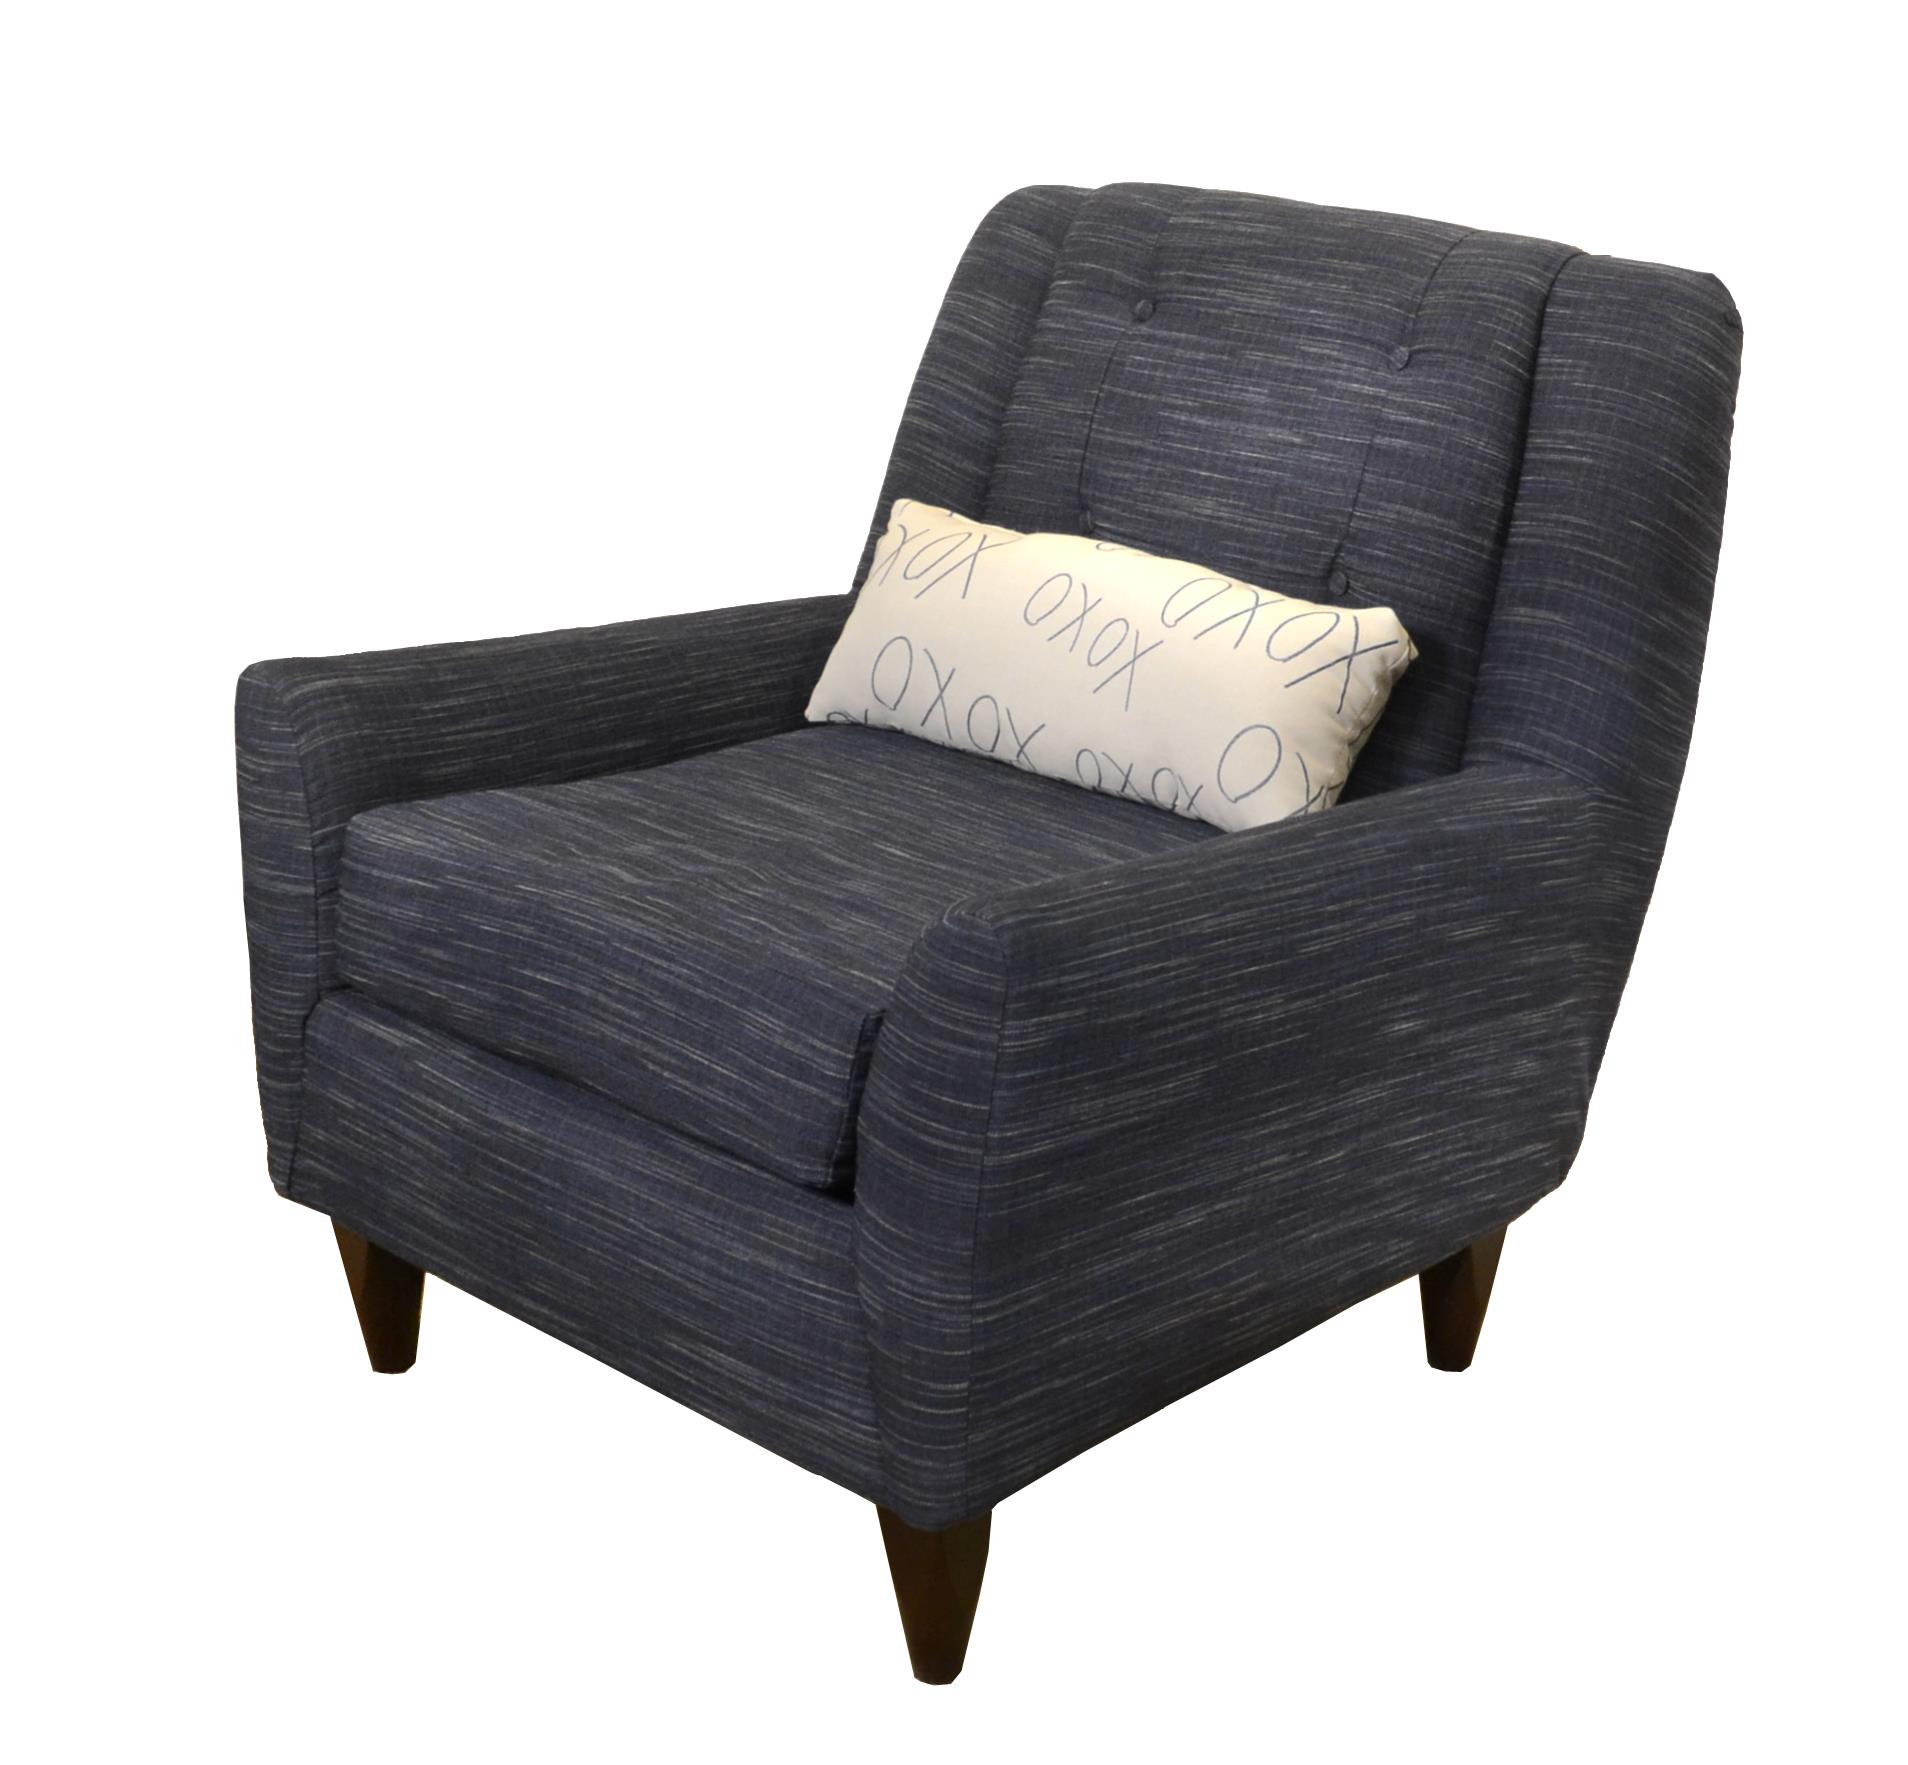 Klaussner Carly Occasional Chair - Item Number: K47400 OC-LaneyNavy